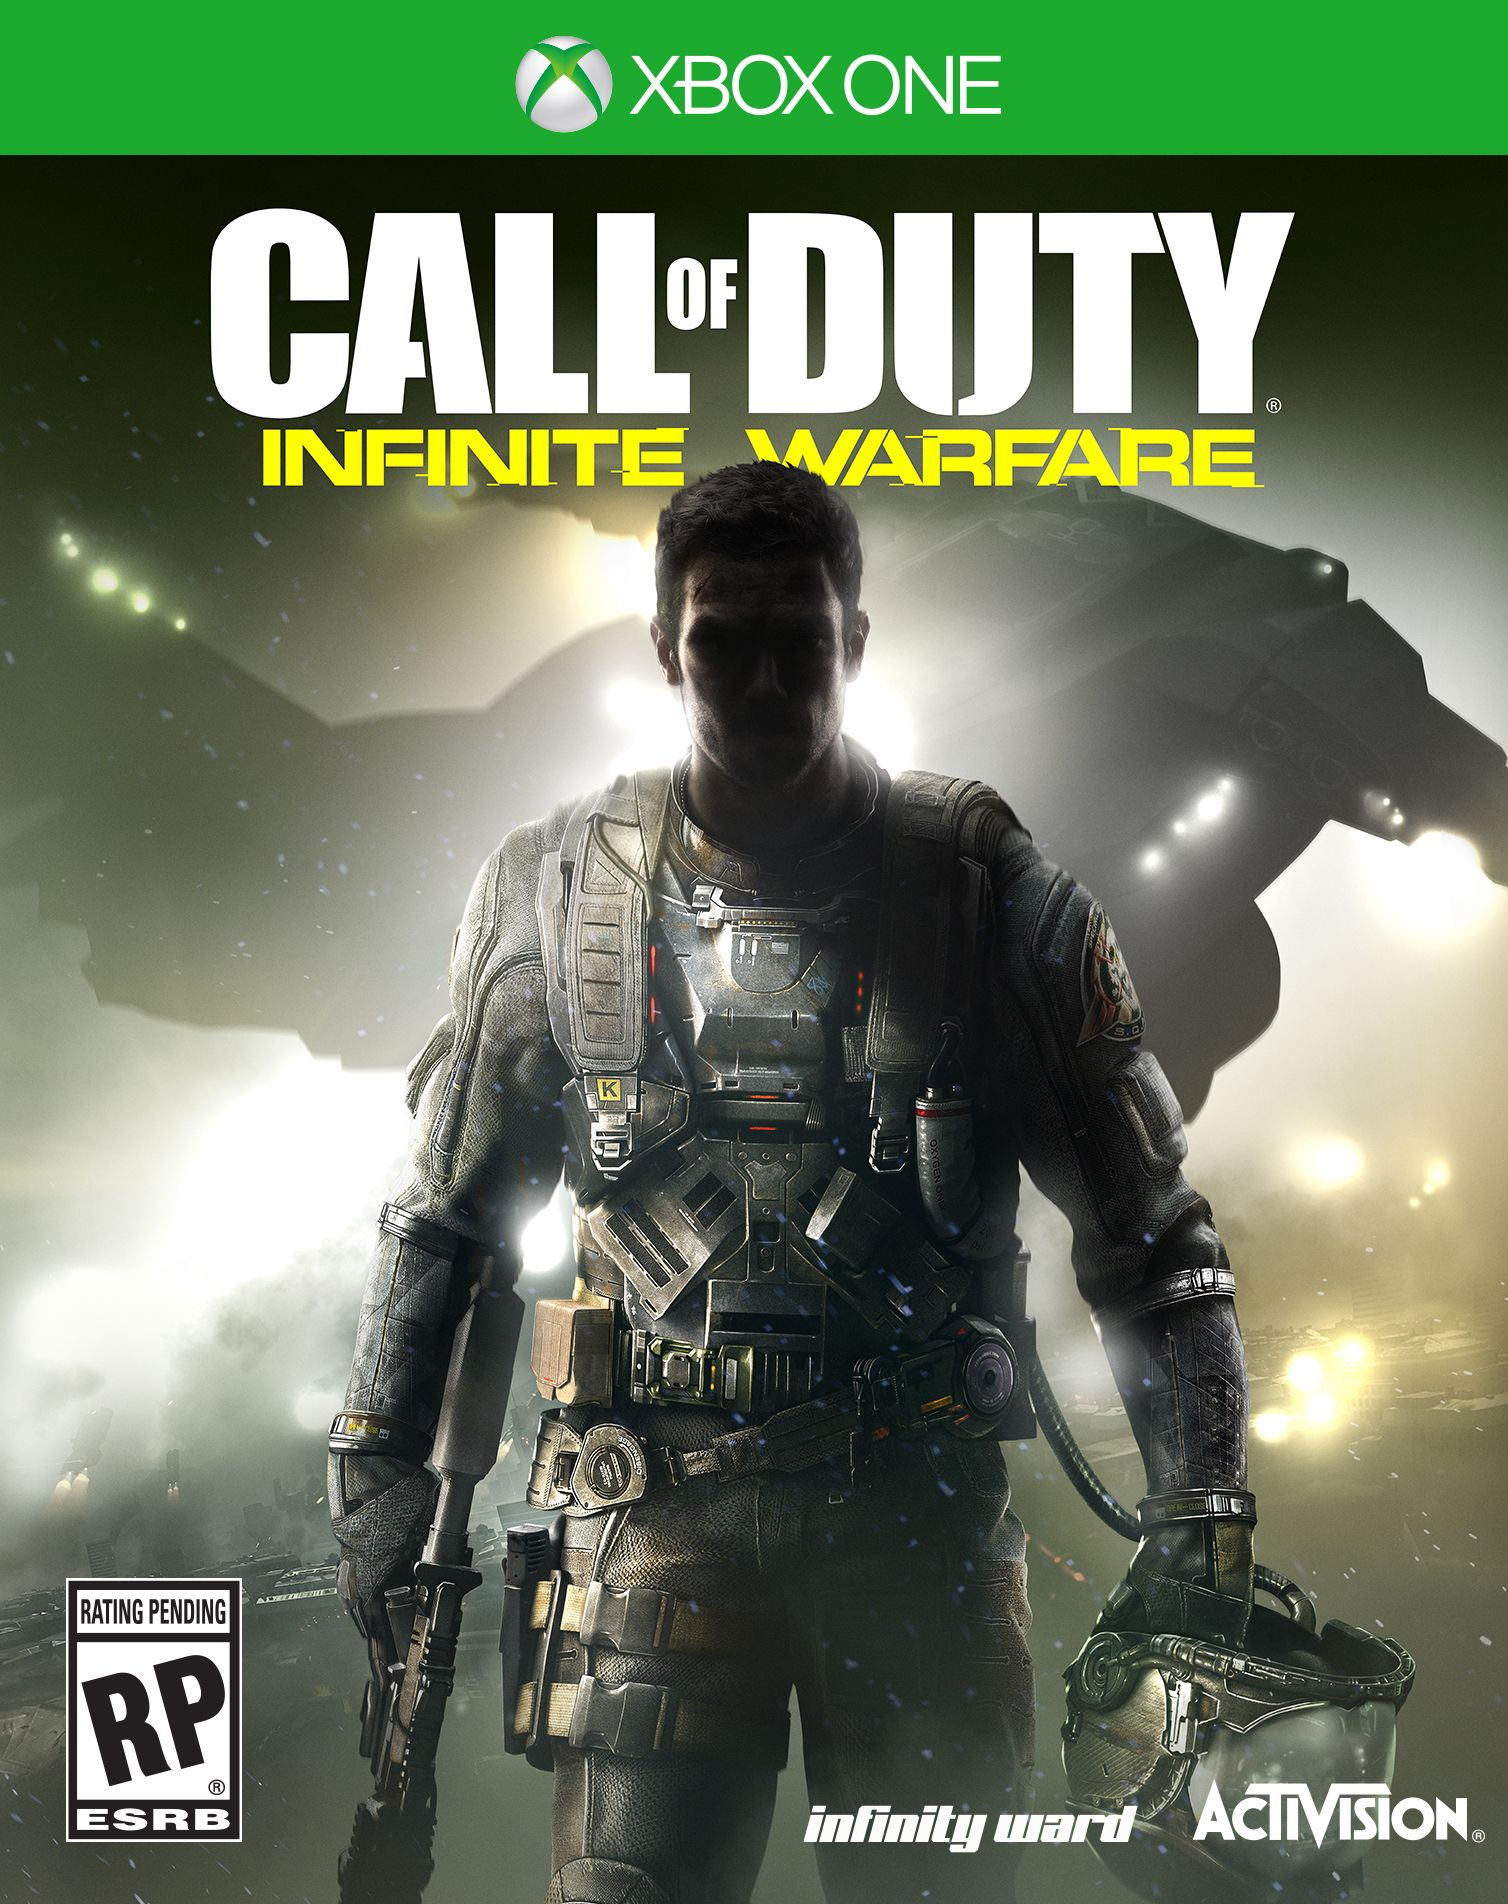 COD-Infinite-Warfare_Reveal_Packshots_X1